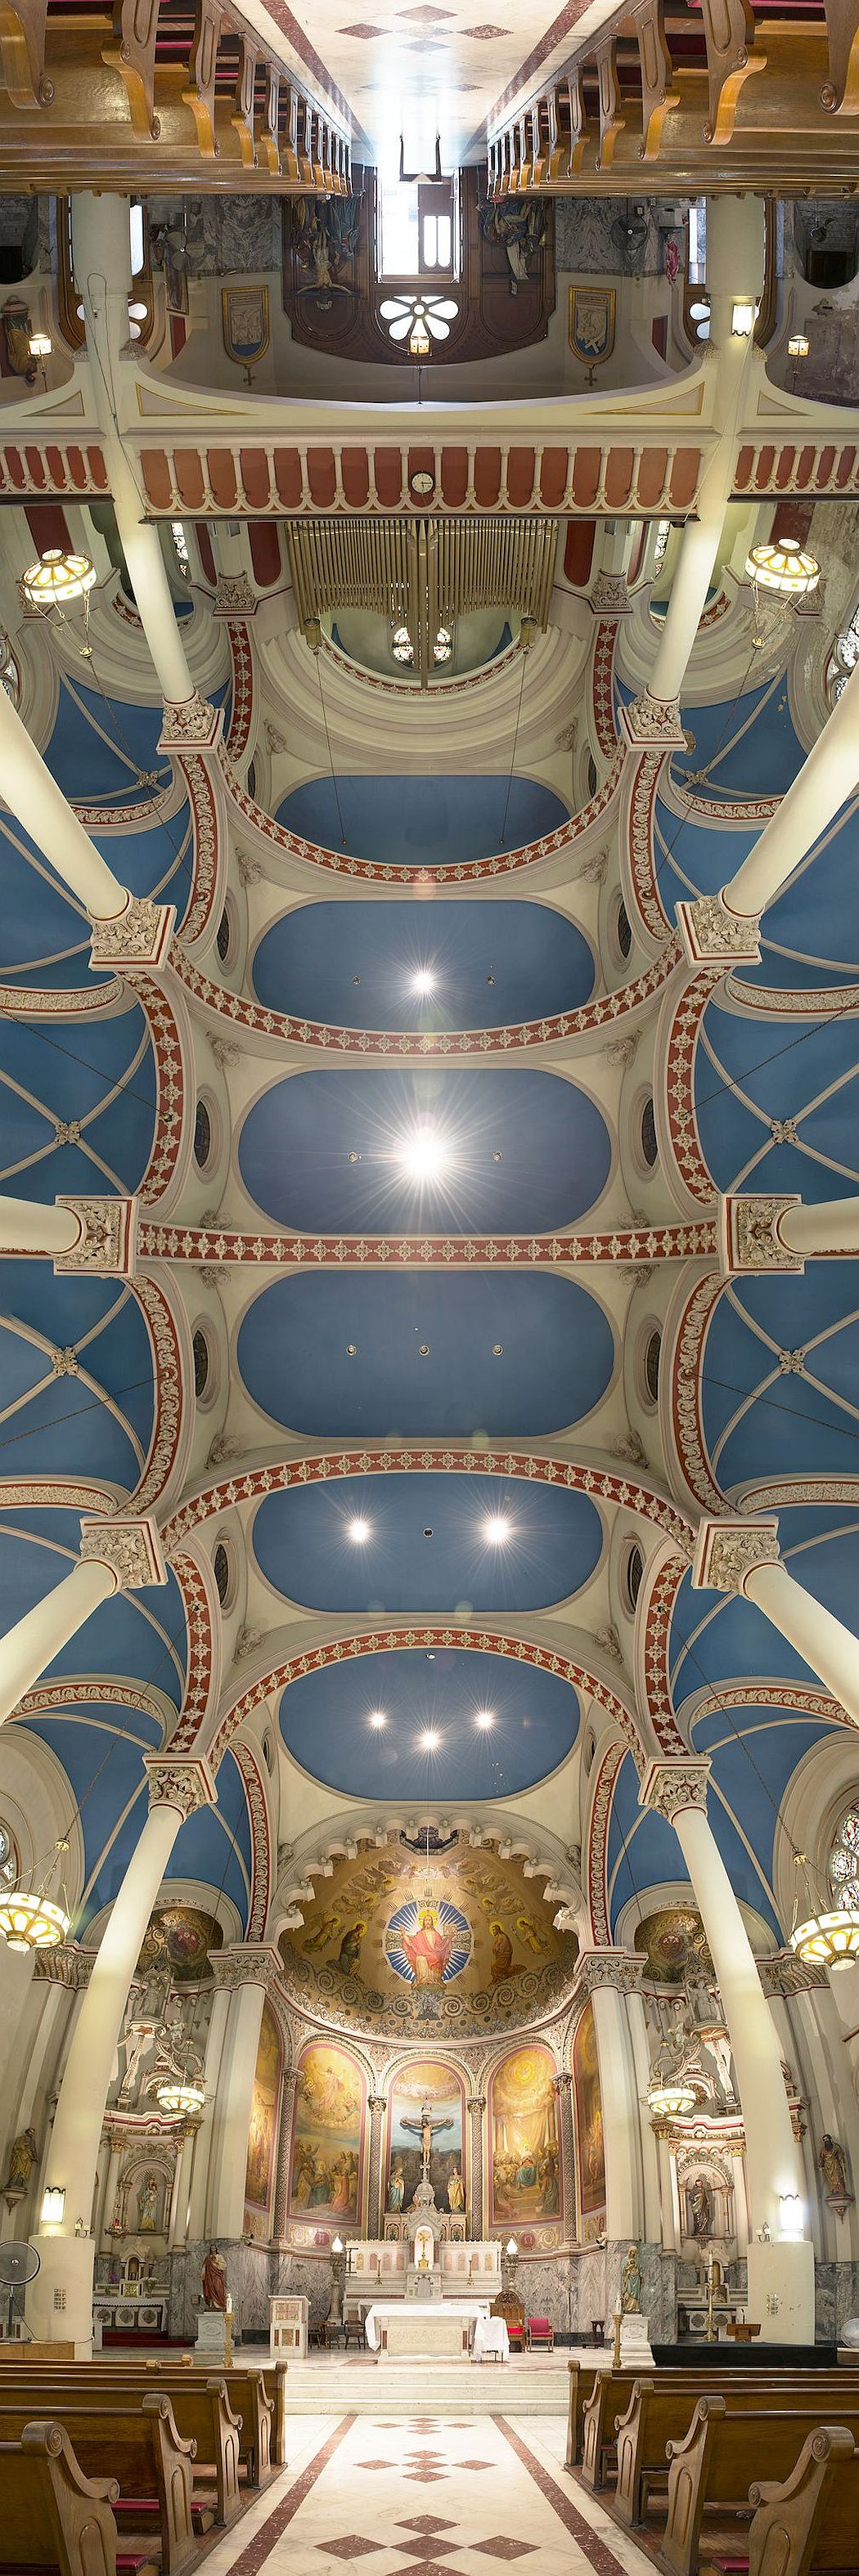 richard-silver-vertical-panoramas-of-new-york-churches-02